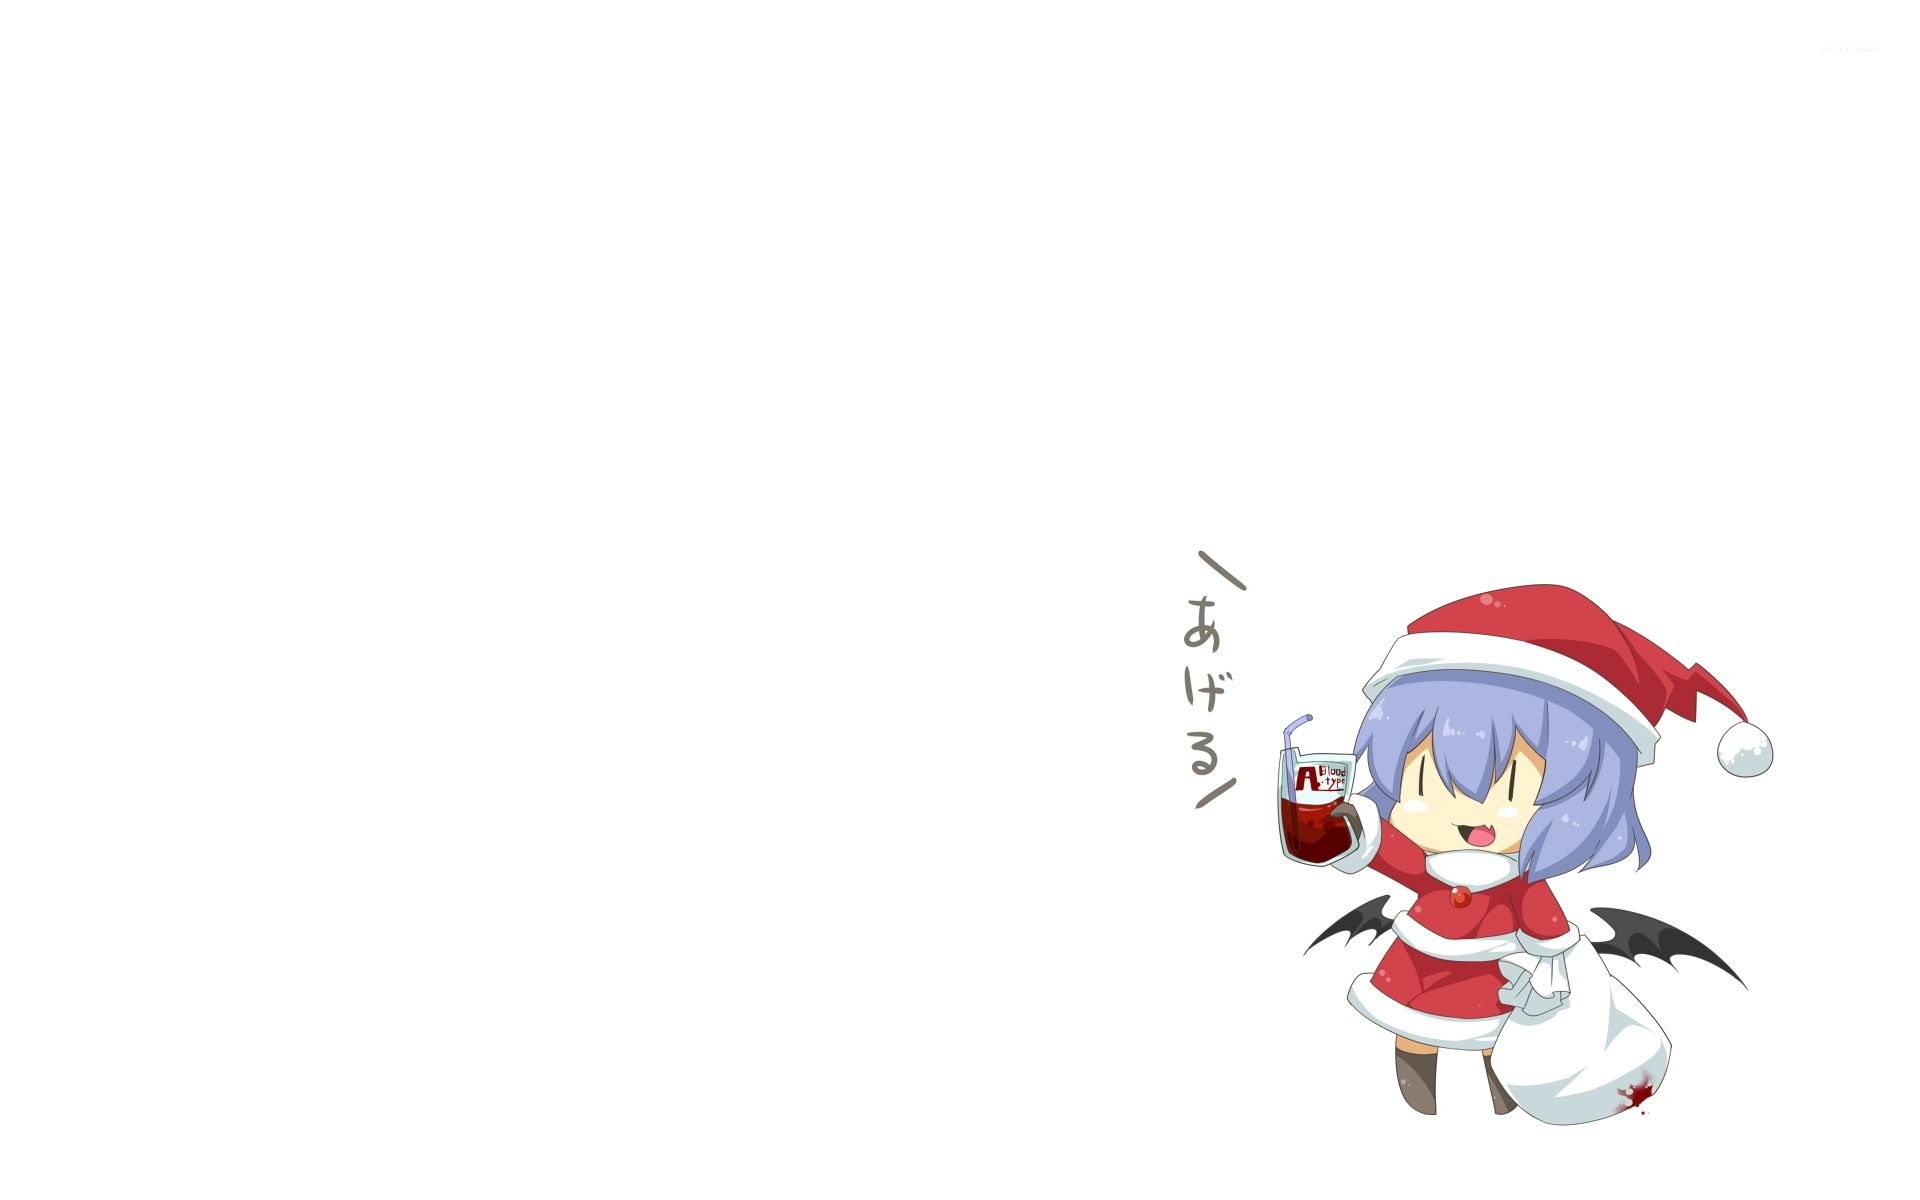 touhou project 14 download